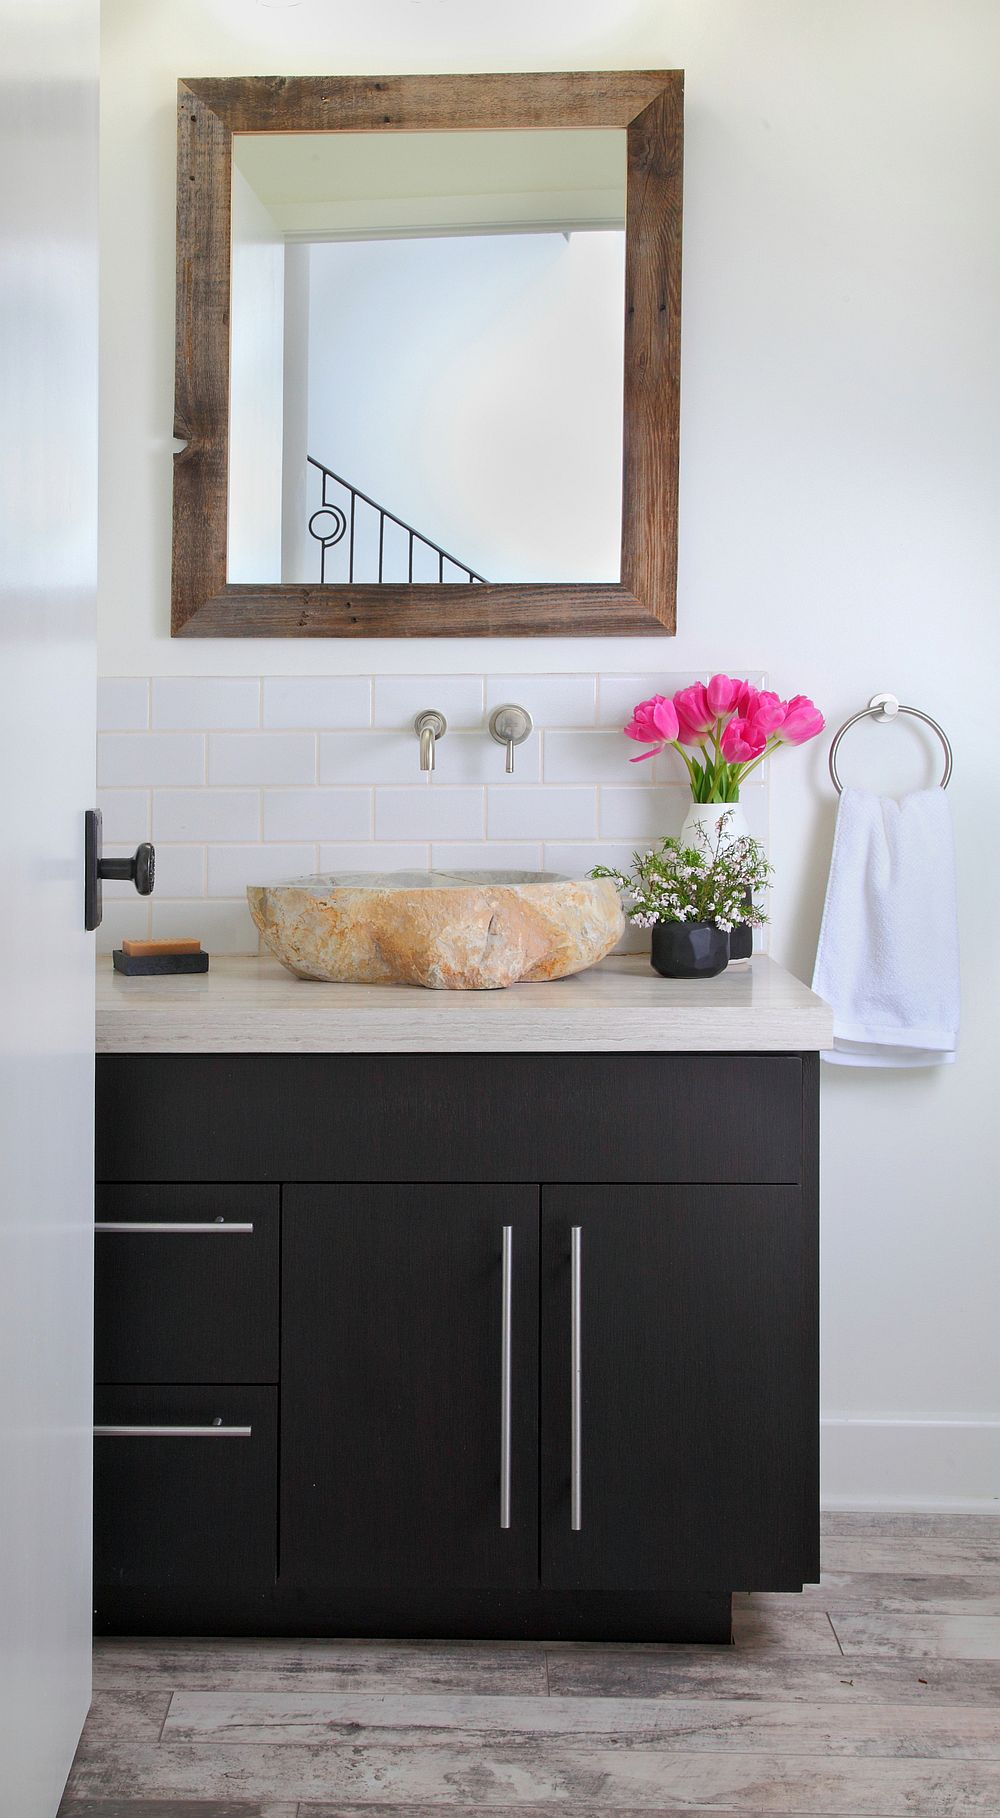 Mid-century and modern rustic elements are beautifully combined in the bathroom